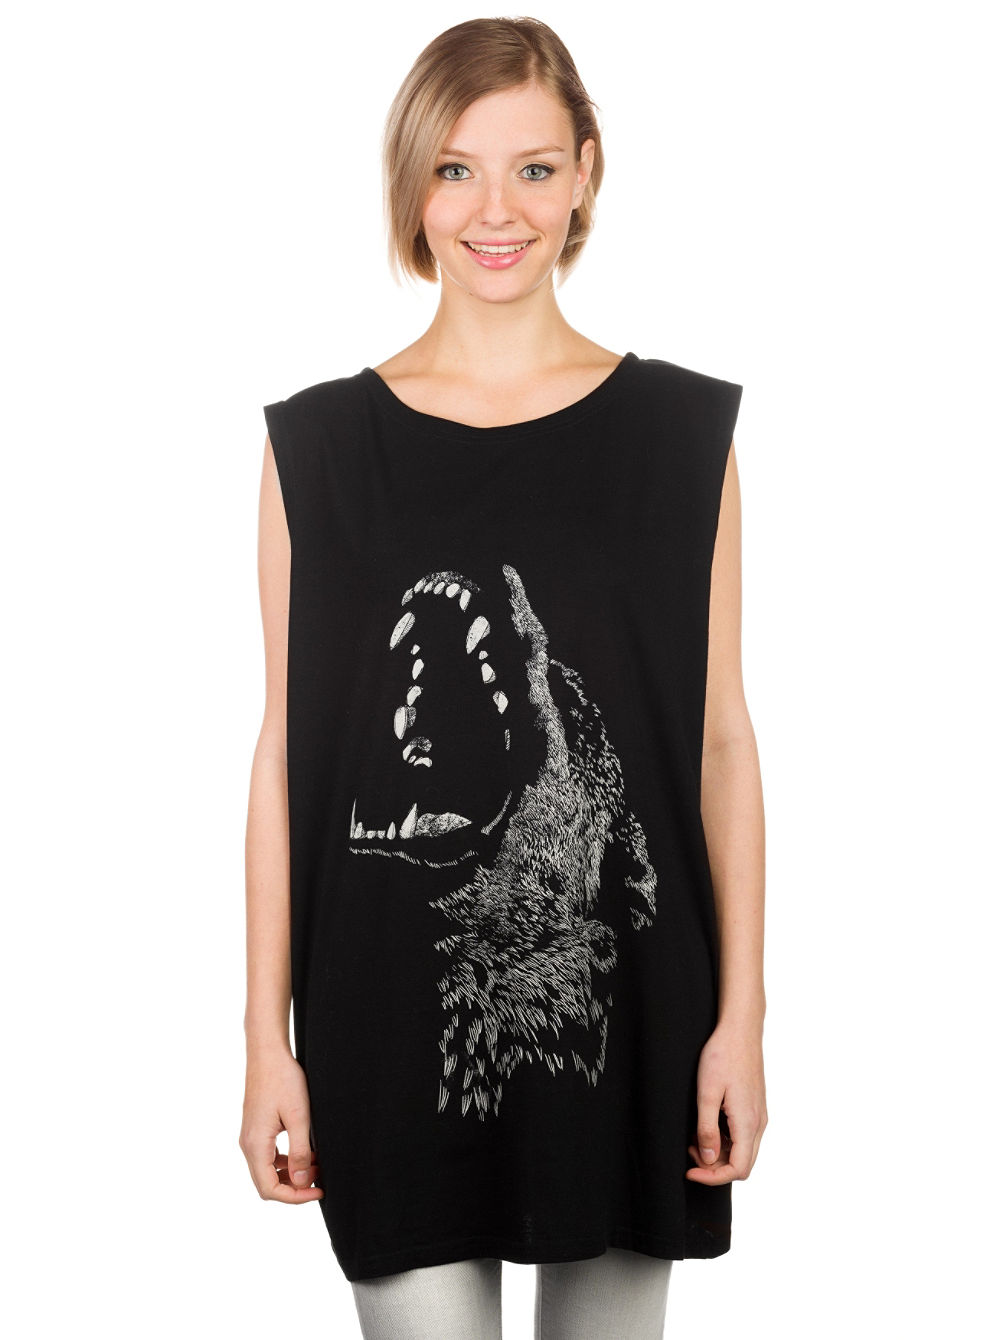 orchid-solowolf-tank-top